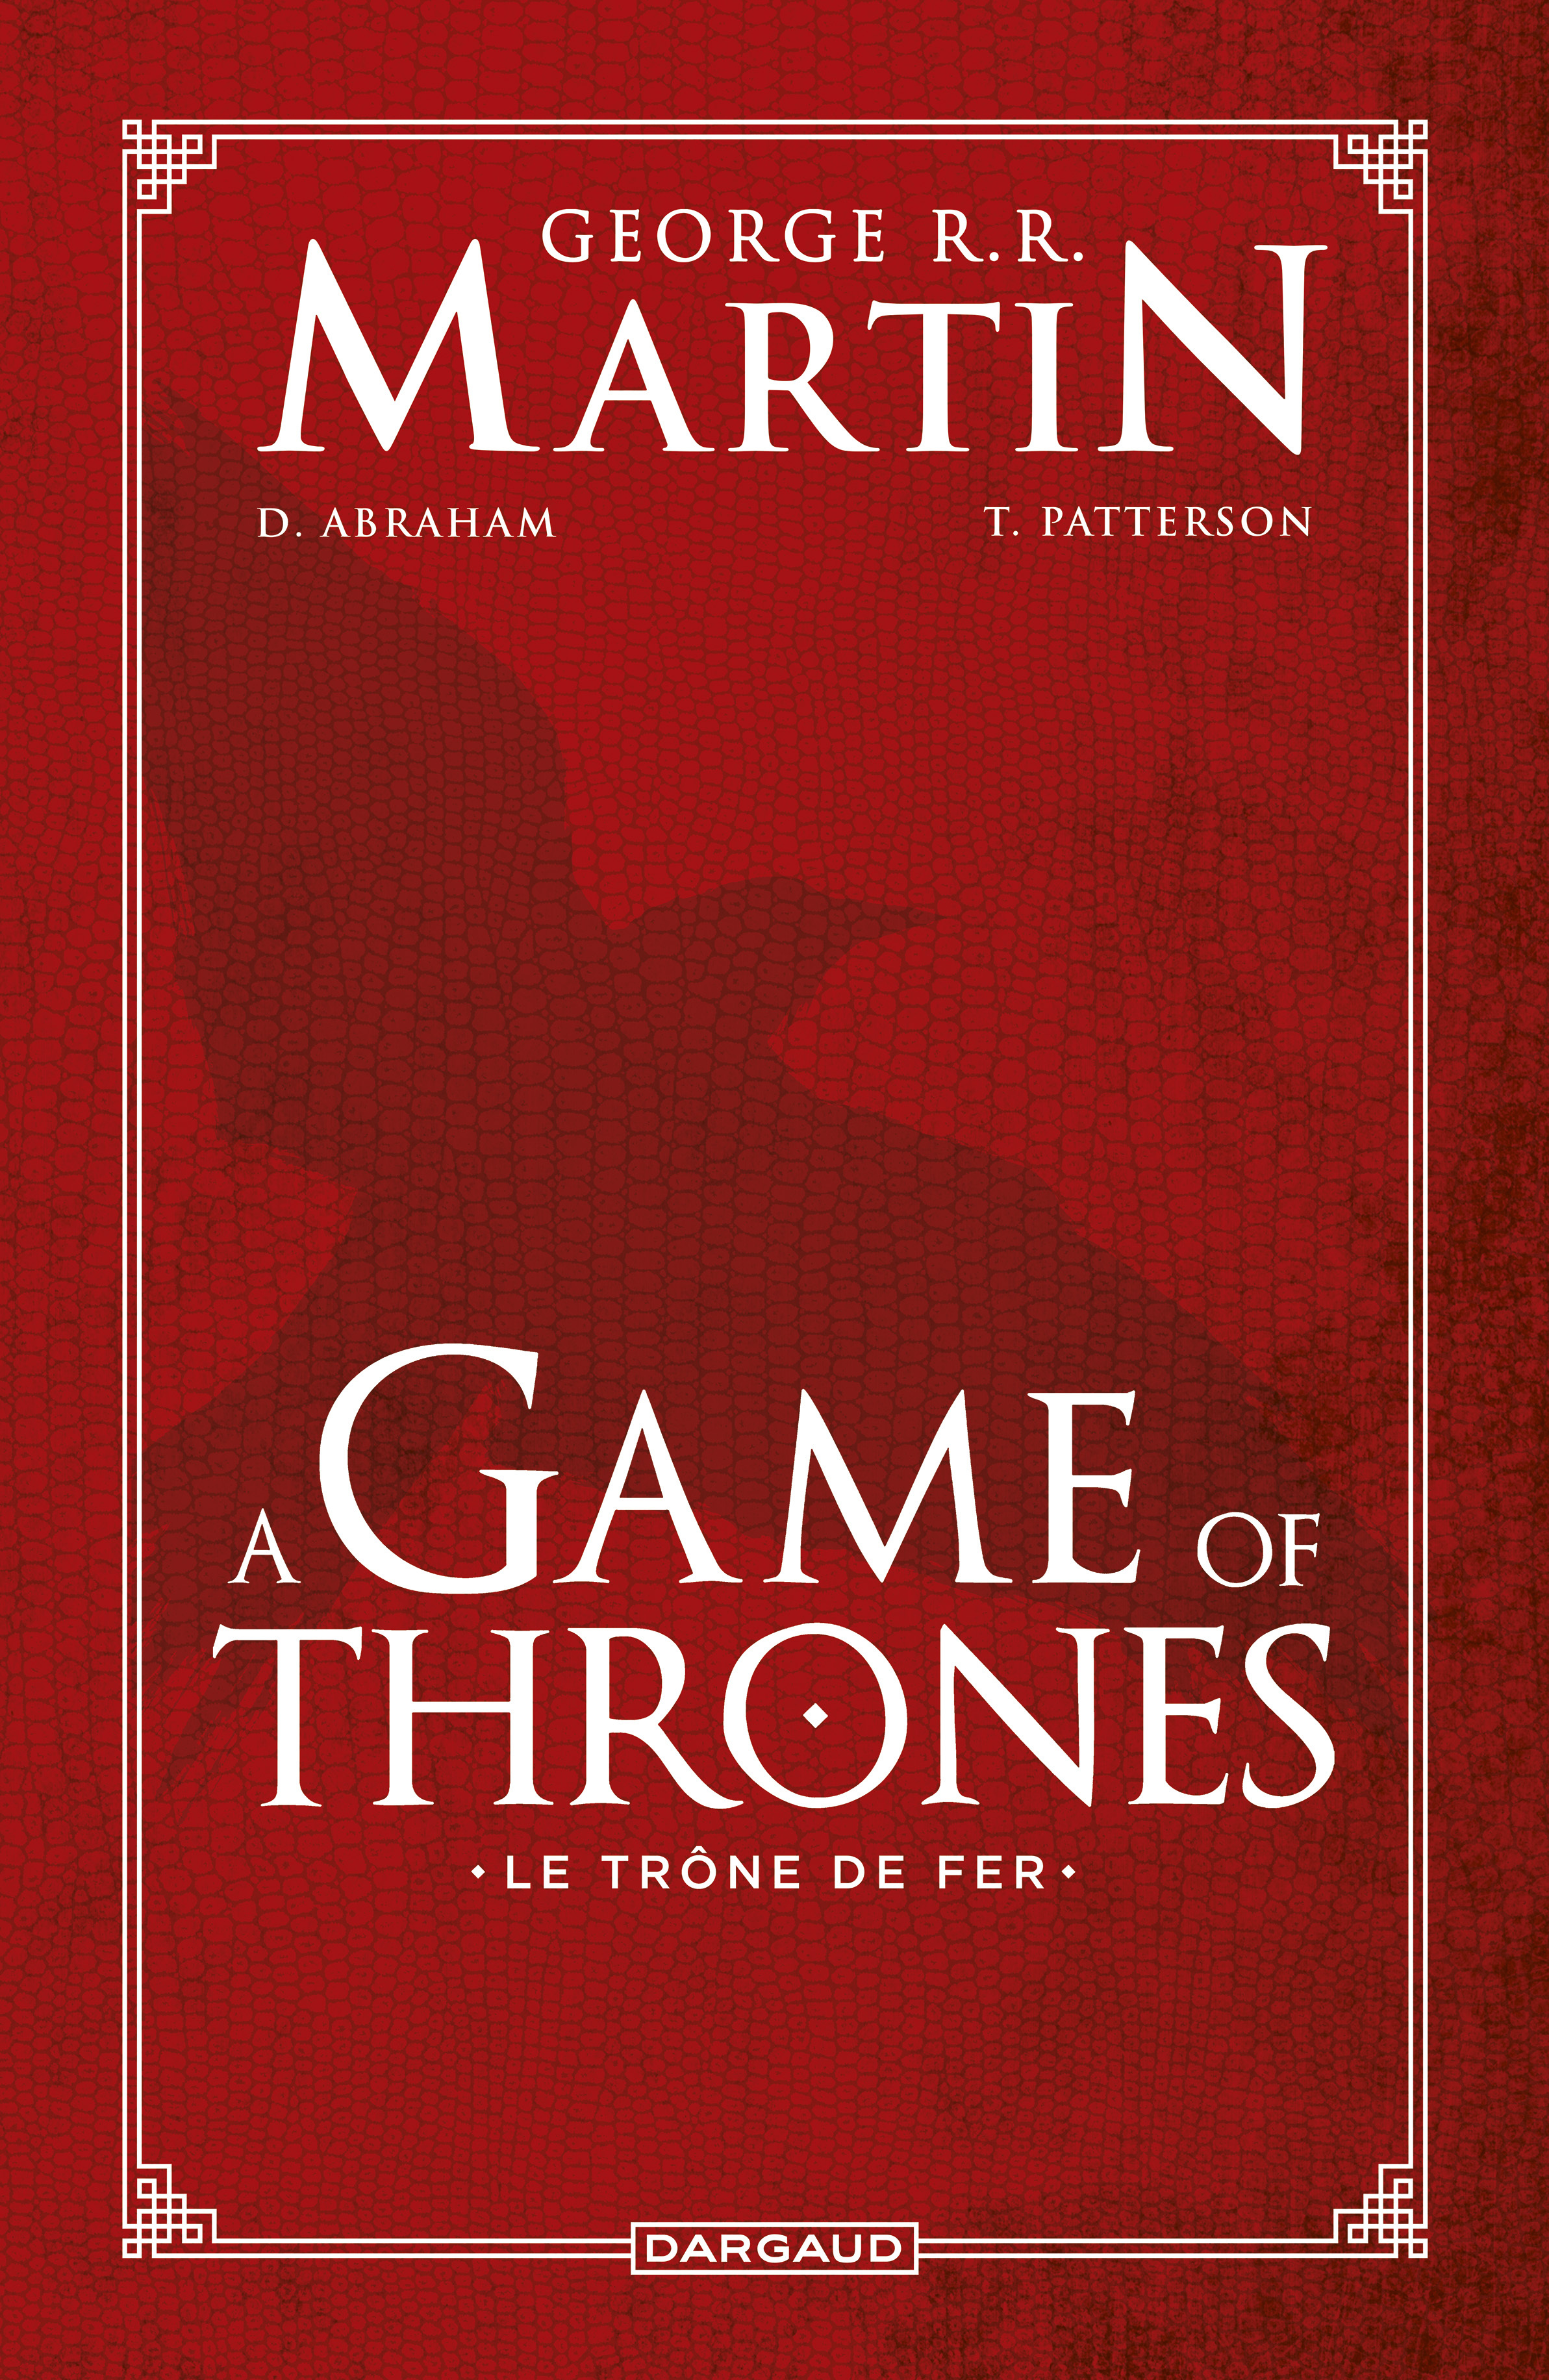 A GAME OF THRONES-INTEGRALE GAME OF THRONES-INTEGRALE